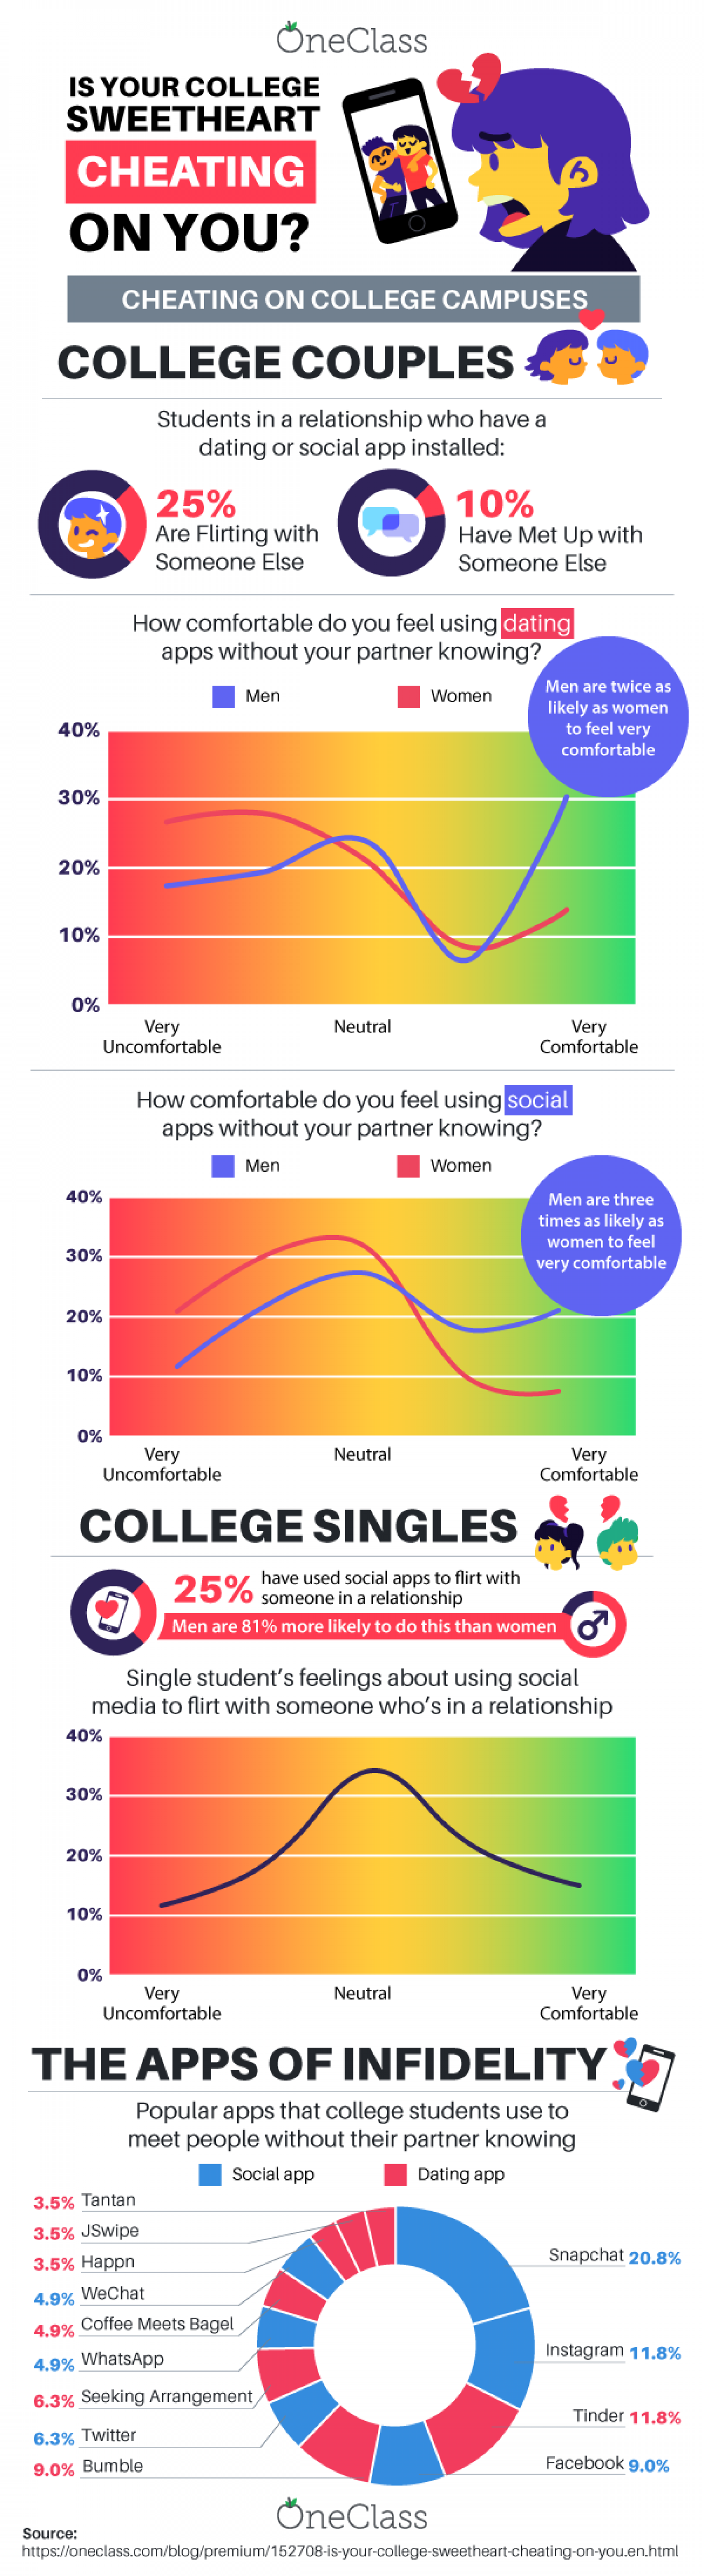 Is Your College Sweetheart Cheating on You? Infographic